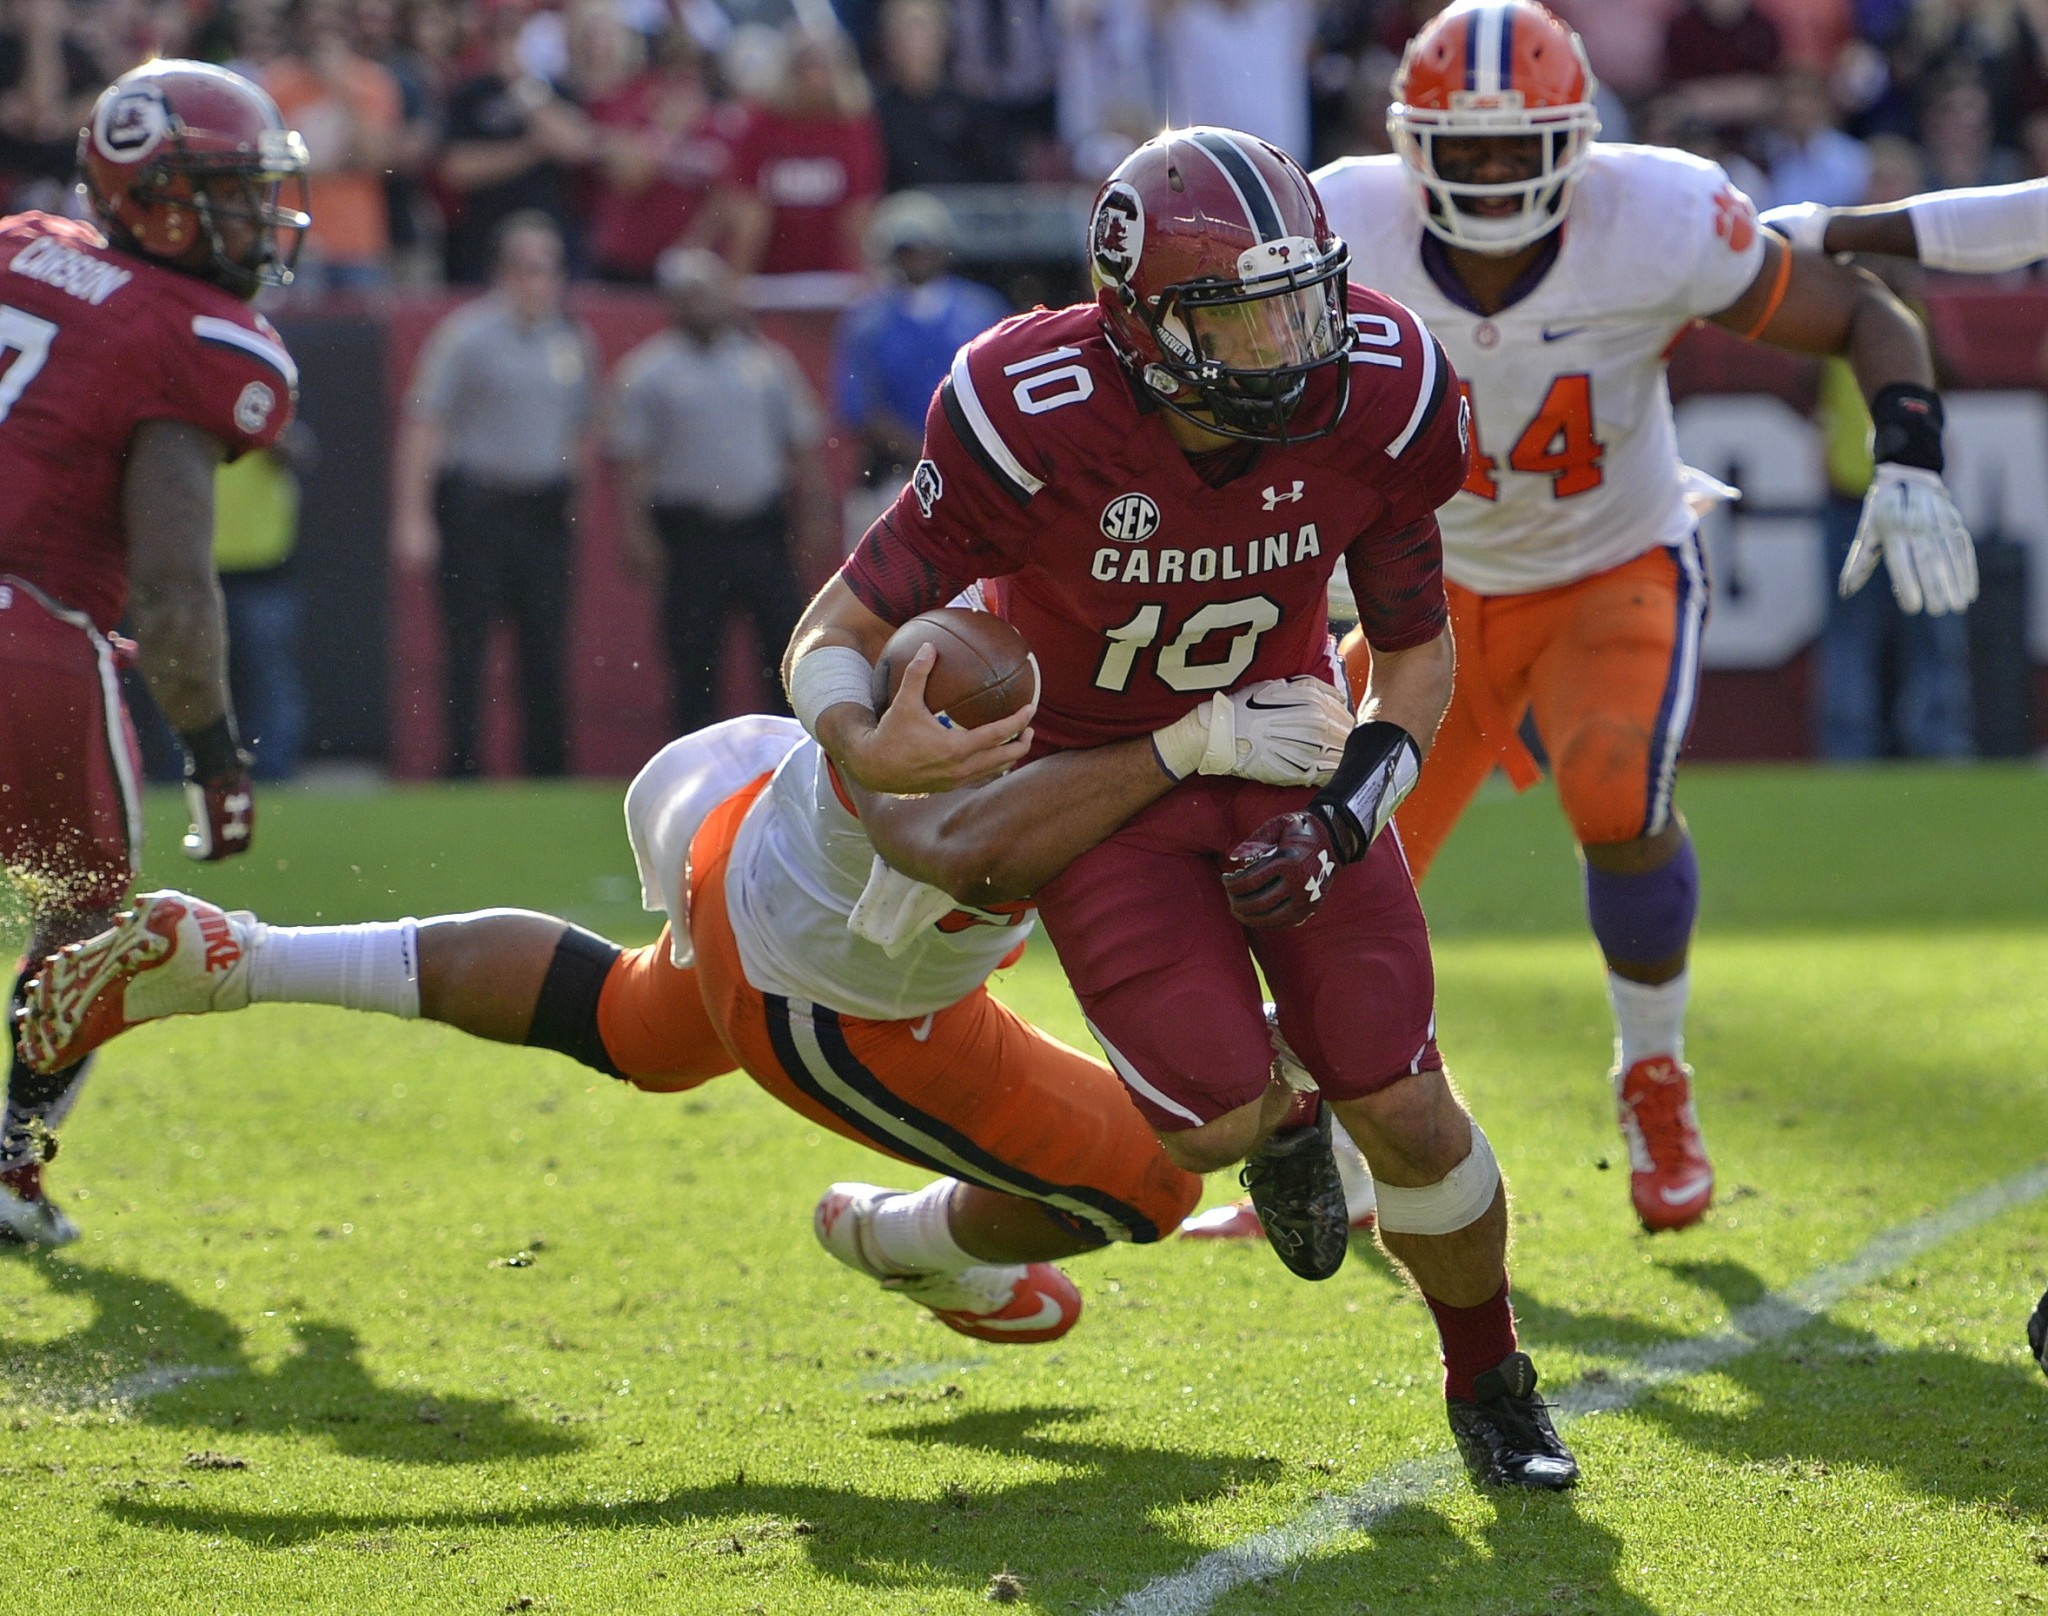 South Carolina quarterback Perry Orth scrambles out of the backfield during the second half of an NCAA college football game against Clemson Saturday, Nov. 28, 2015, in Columbia, S.C. Clemson won 37-32. (AP Photo/Richard Shiro)